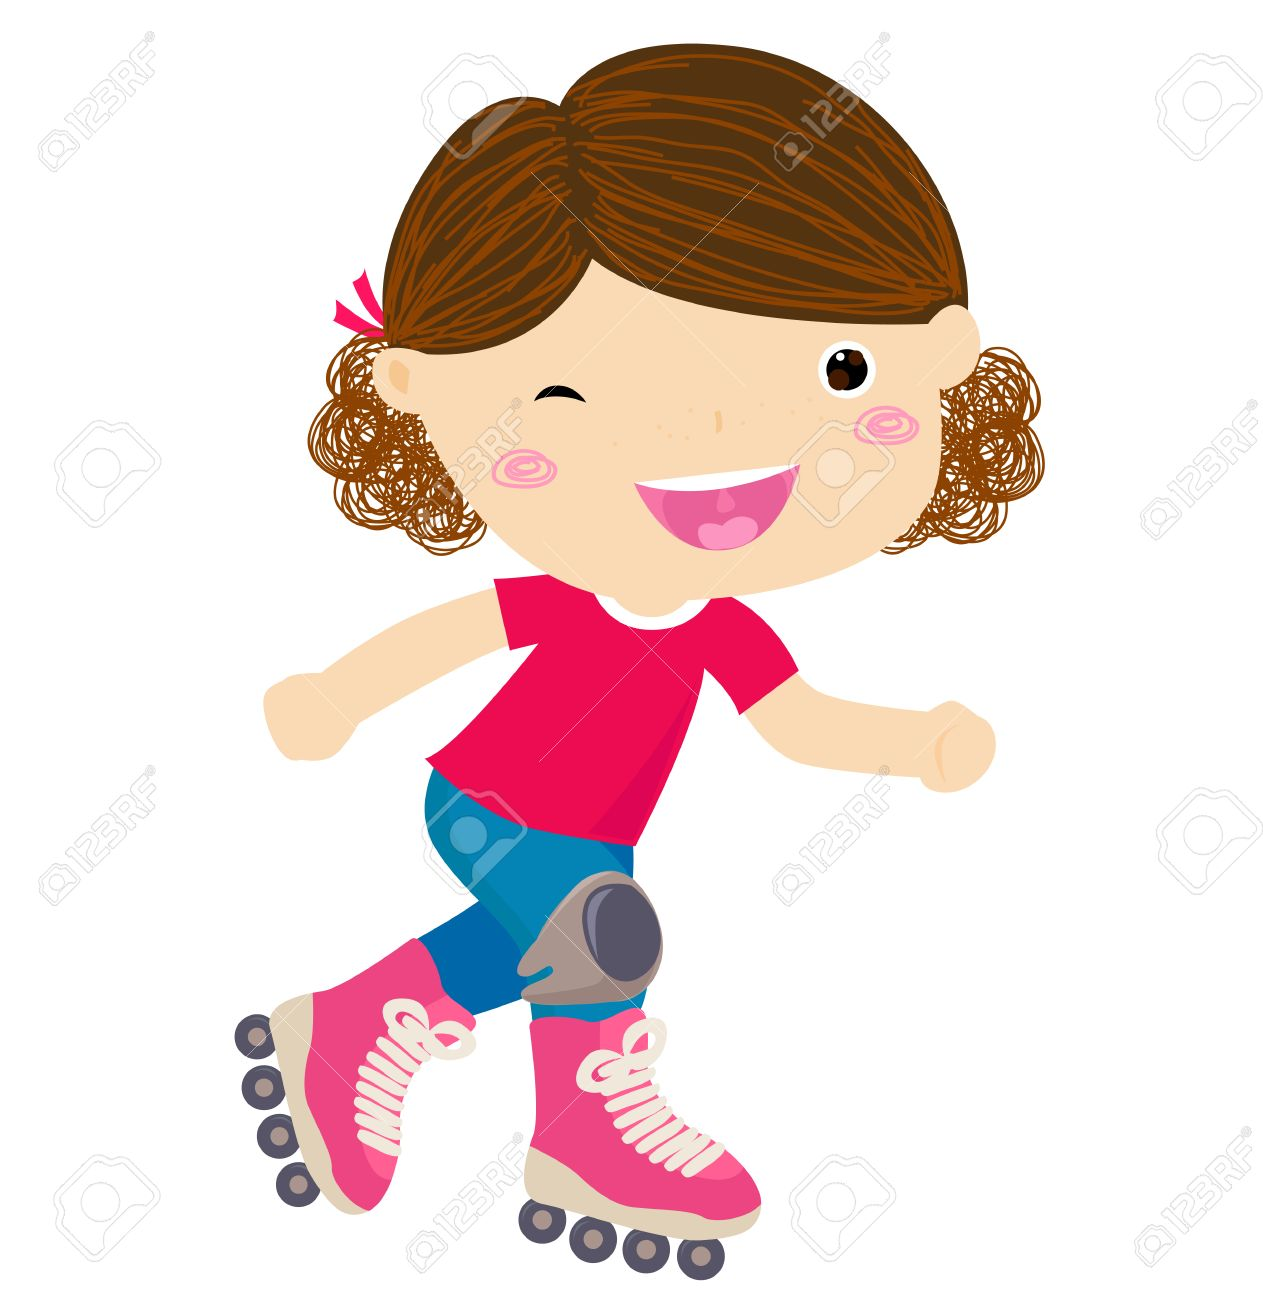 Cute little girl riding roller skates.